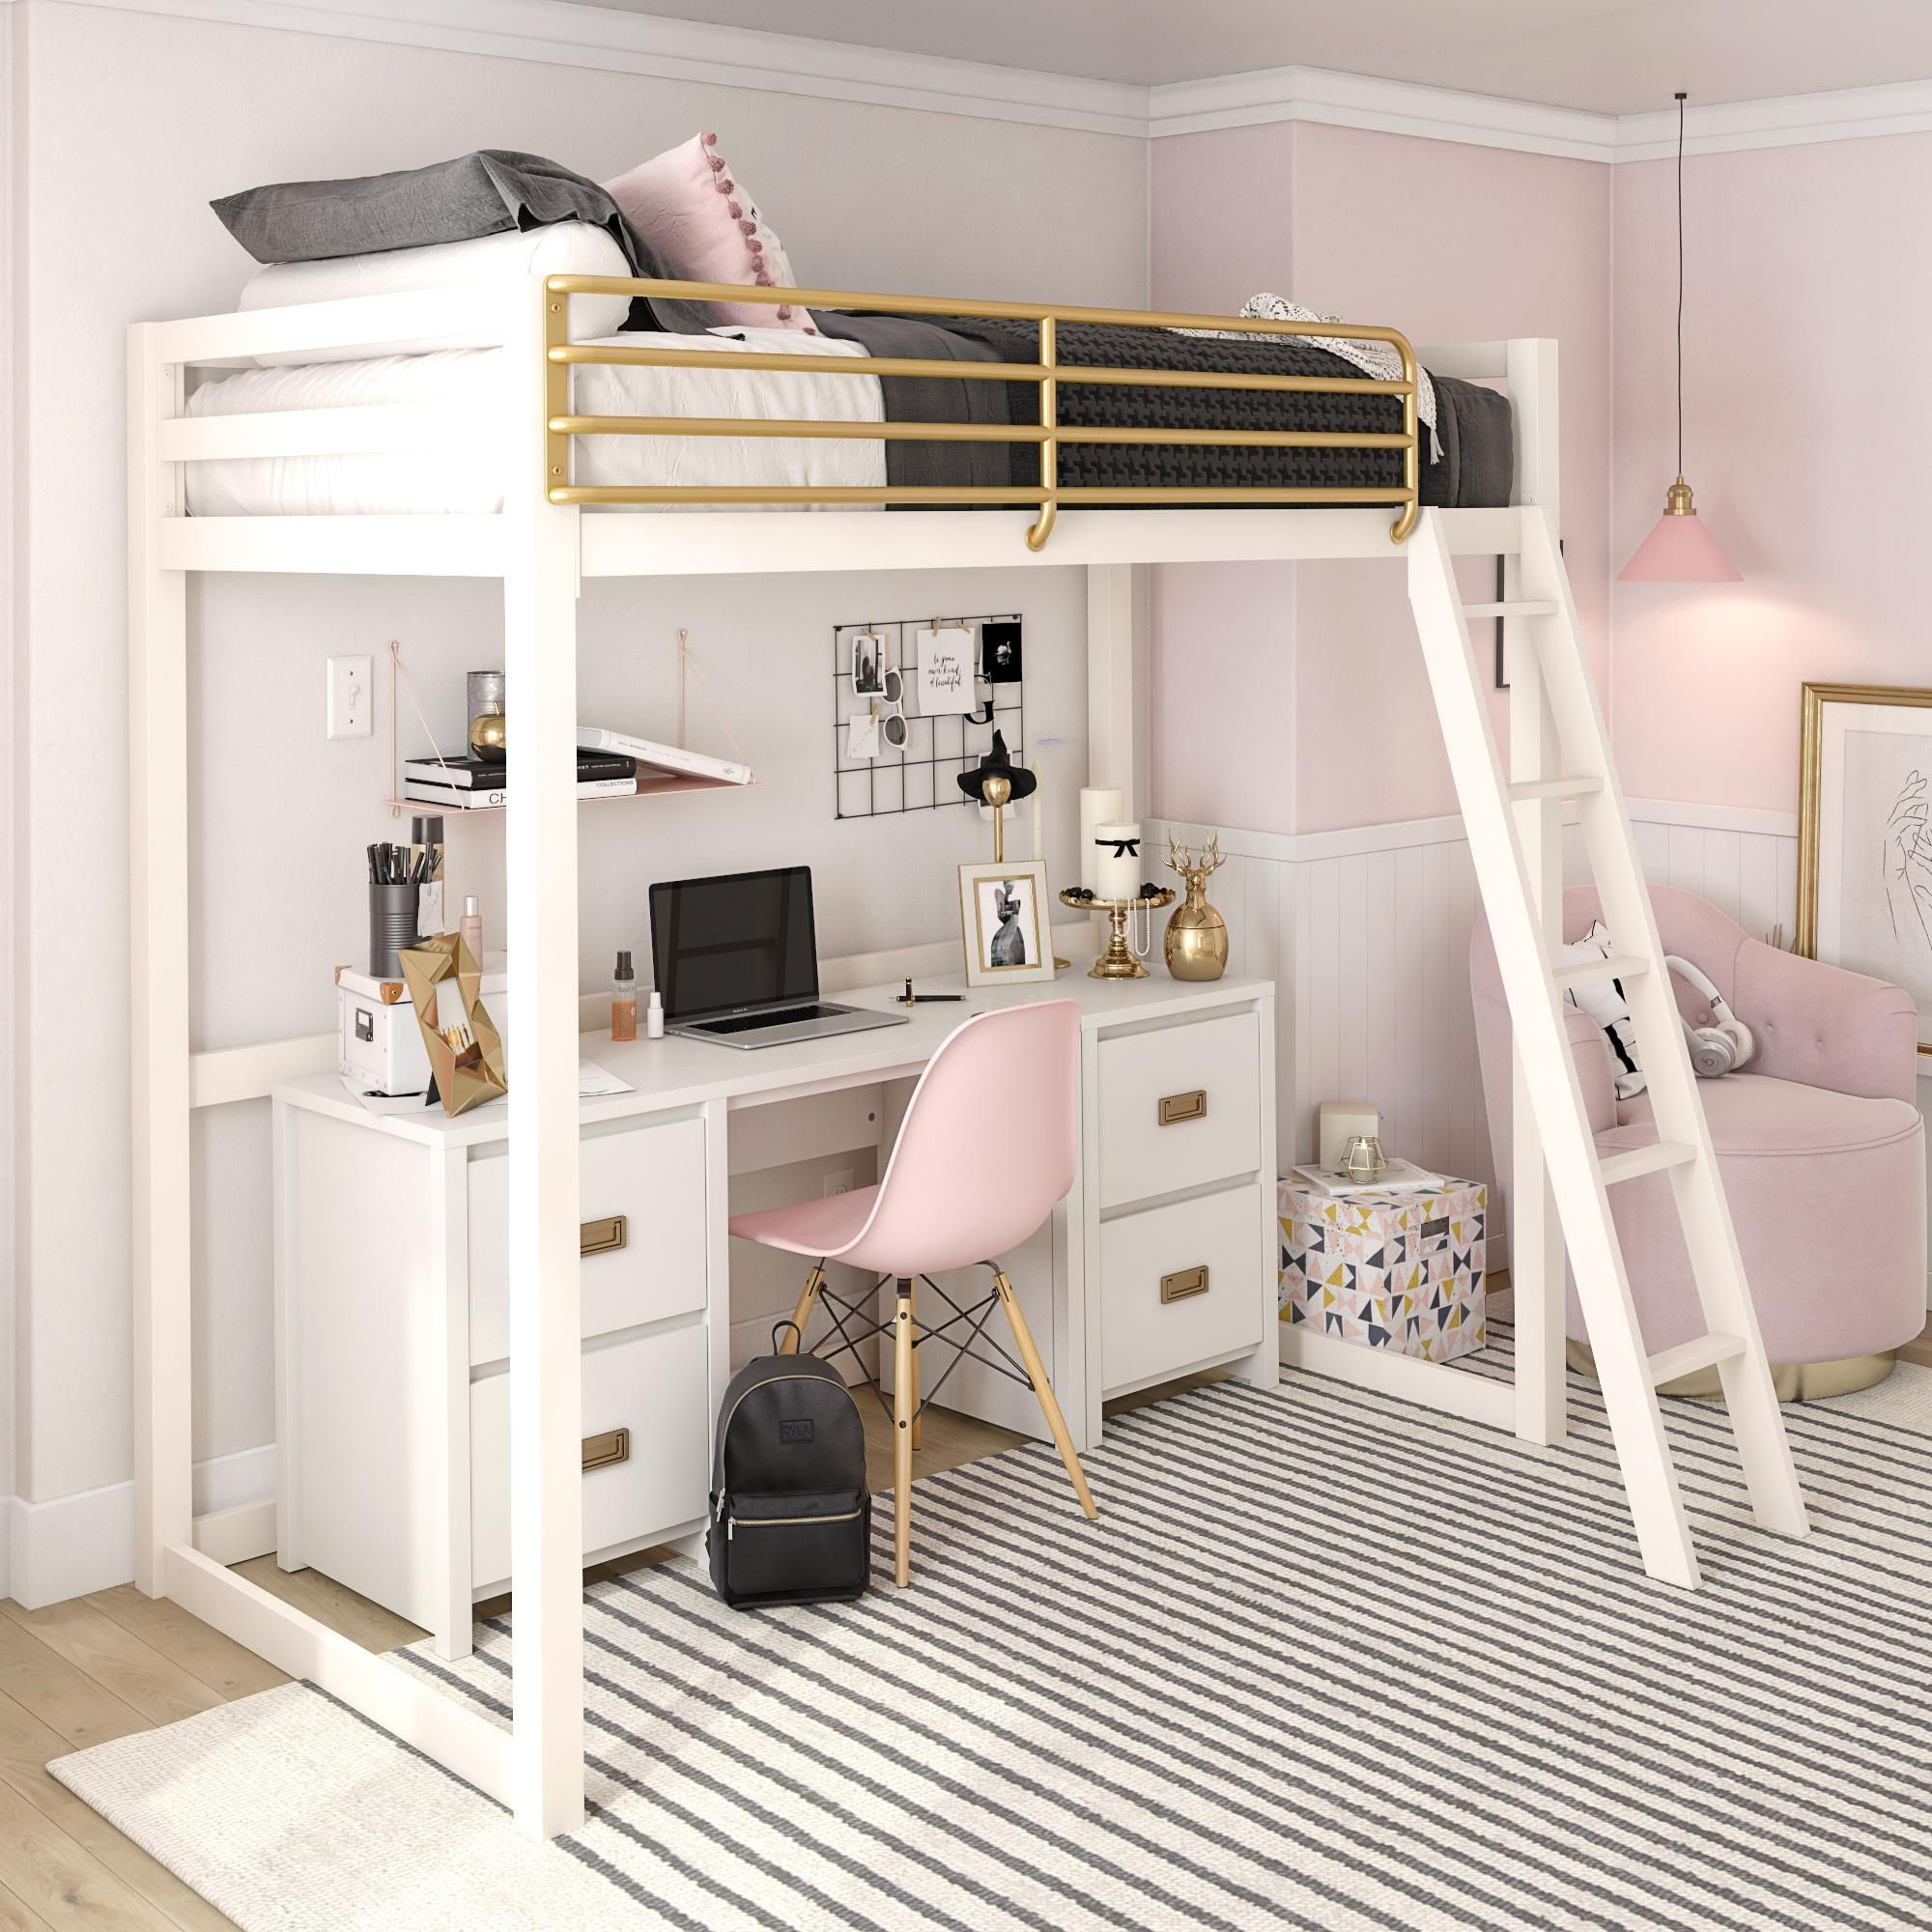 Free 2 Day Shipping Buy Little Seeds Monarch Hill Haven White And Gold Twin Metal Loft Bed At Wal Girls Loft Bed Loft Beds For Teens Loft Beds For Small Rooms